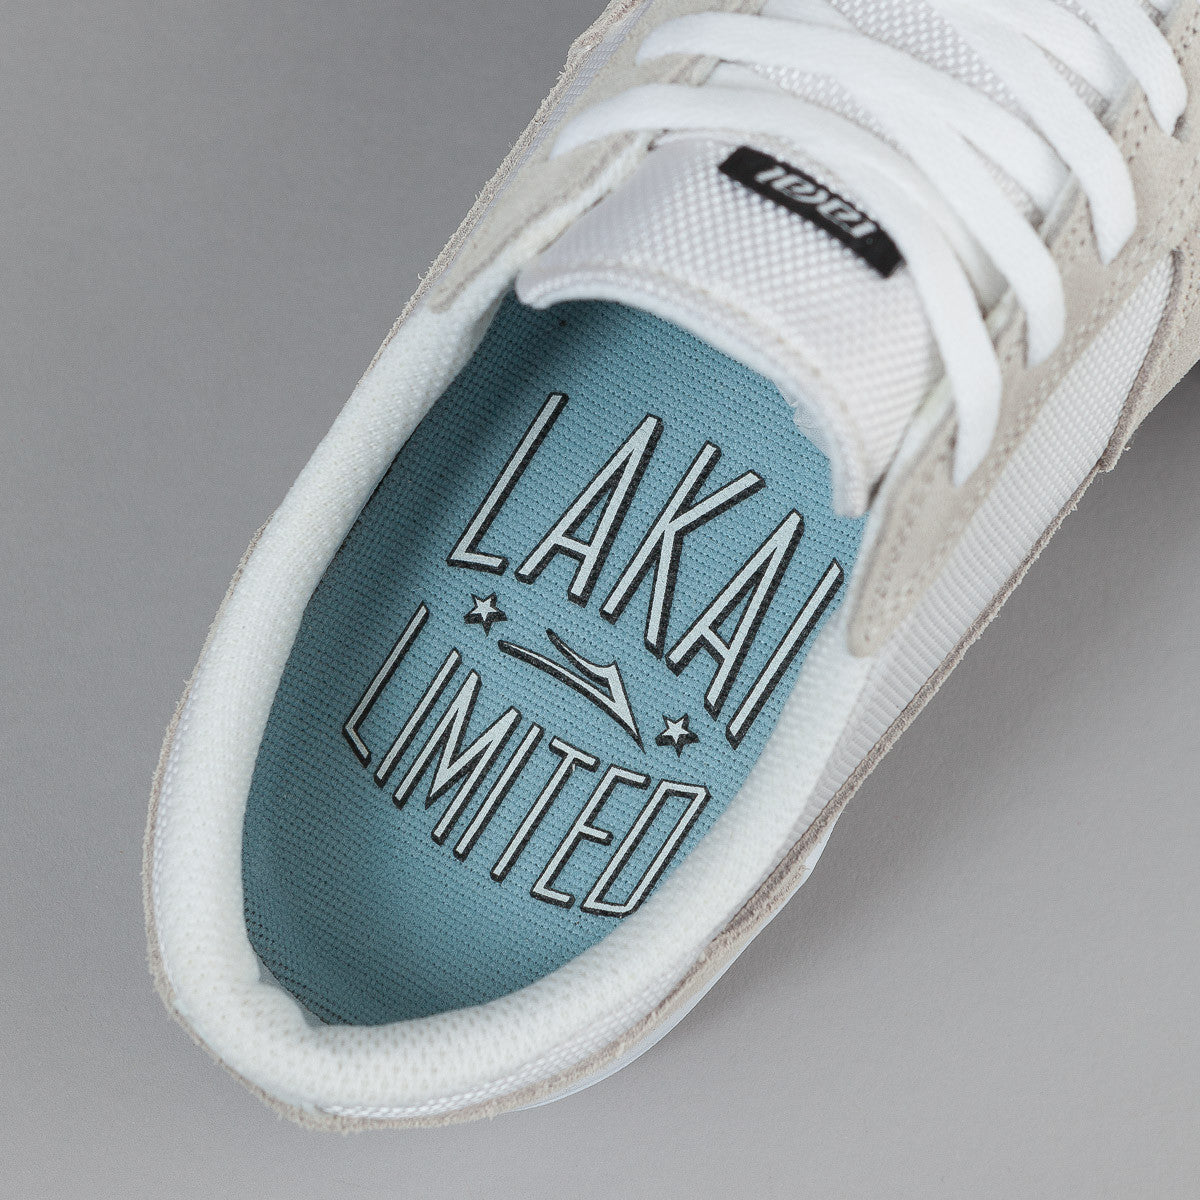 Lakai Chalk Pack Parker Shoes - White